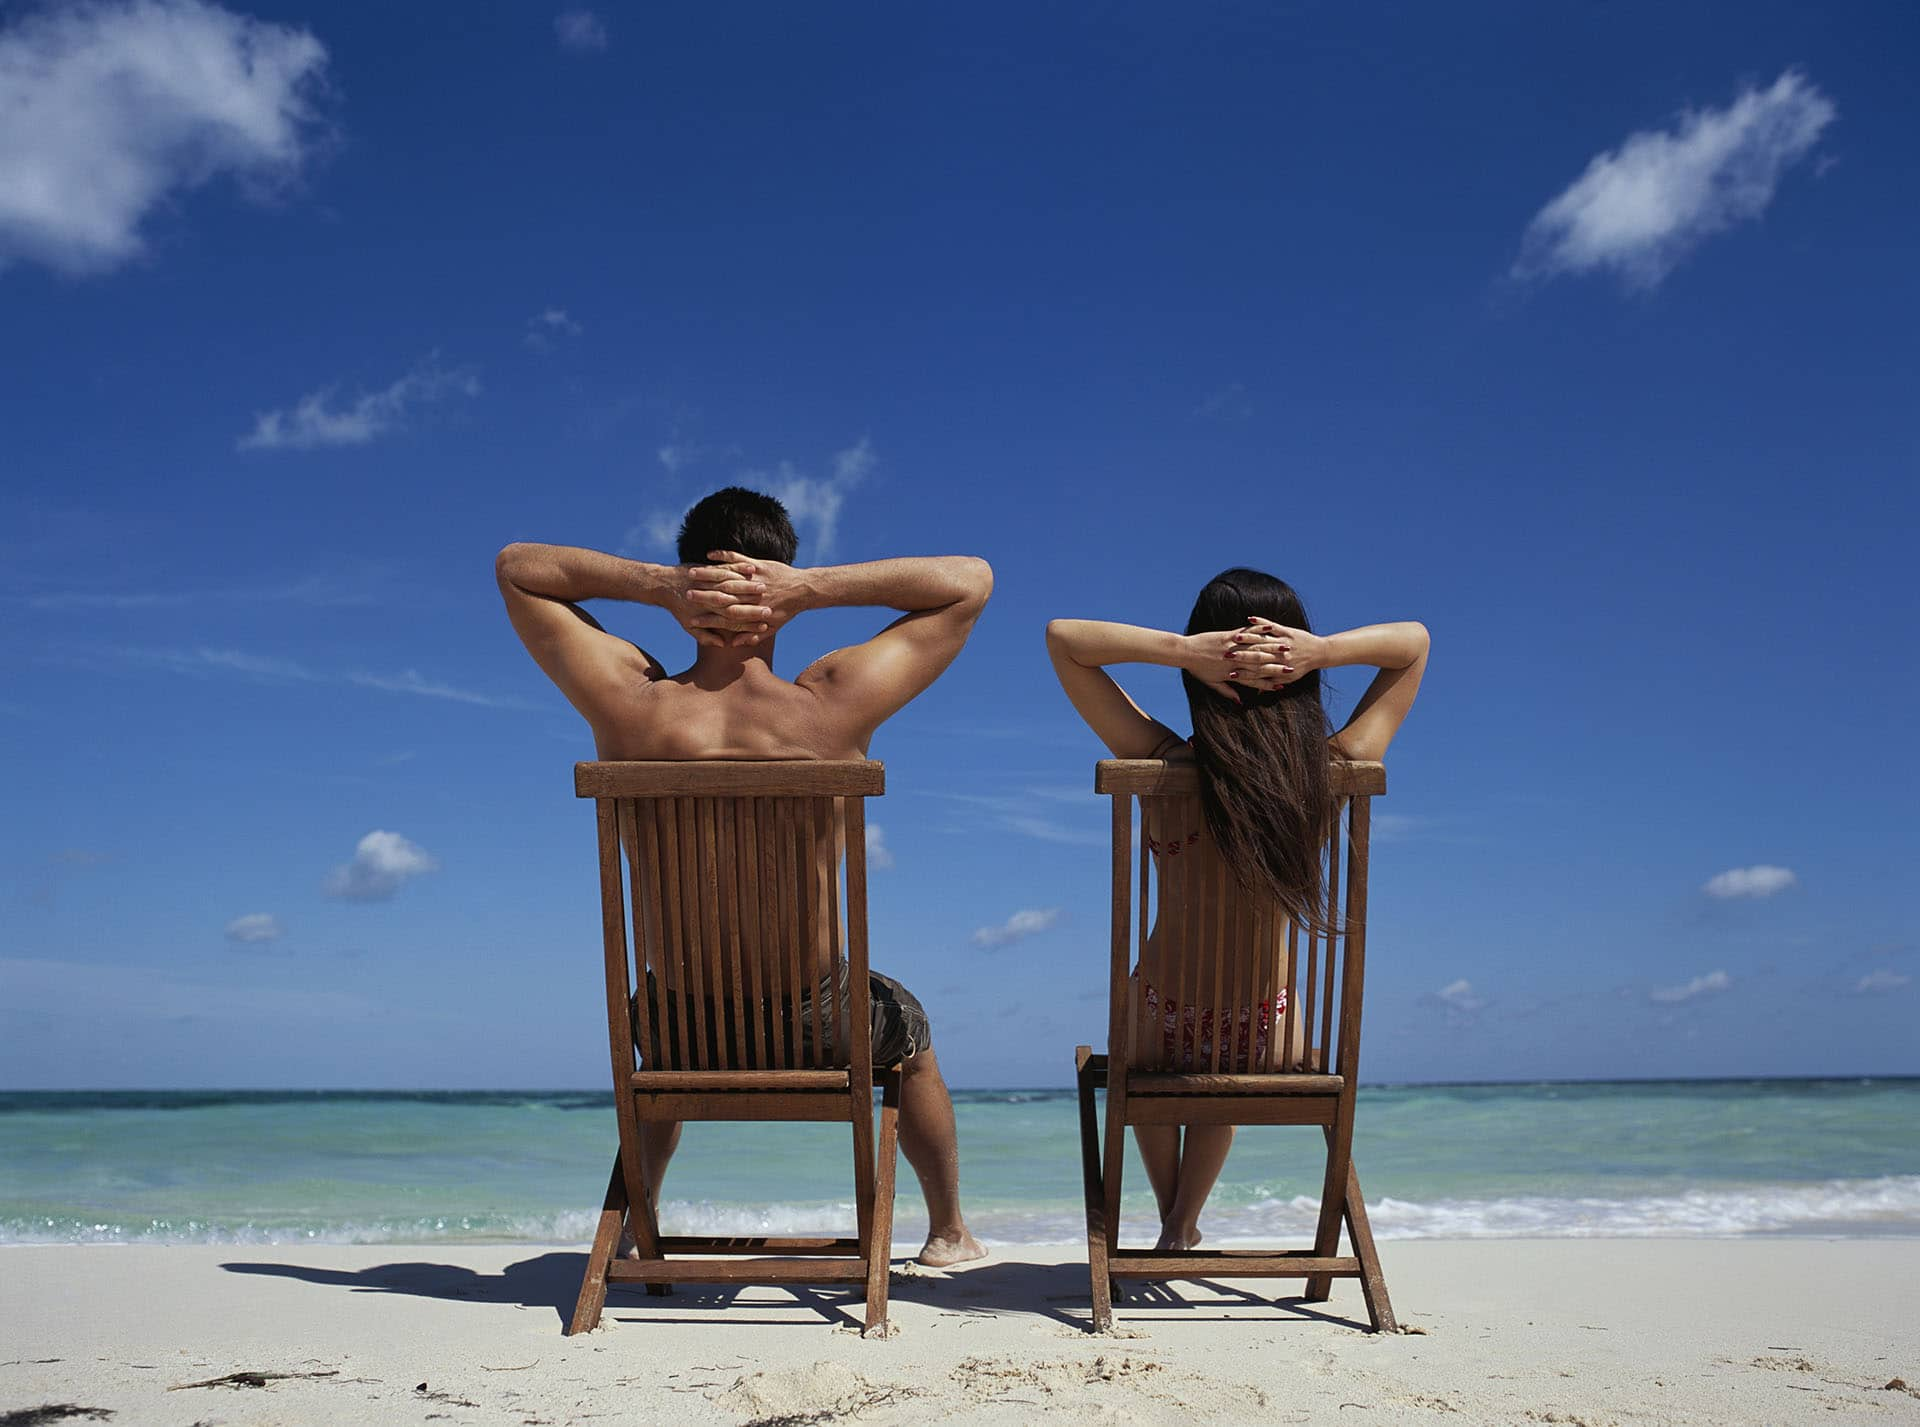 Couple Relaxing in Lounge Chairs at Beach --- Image by © Franco Vogt/CORBIS